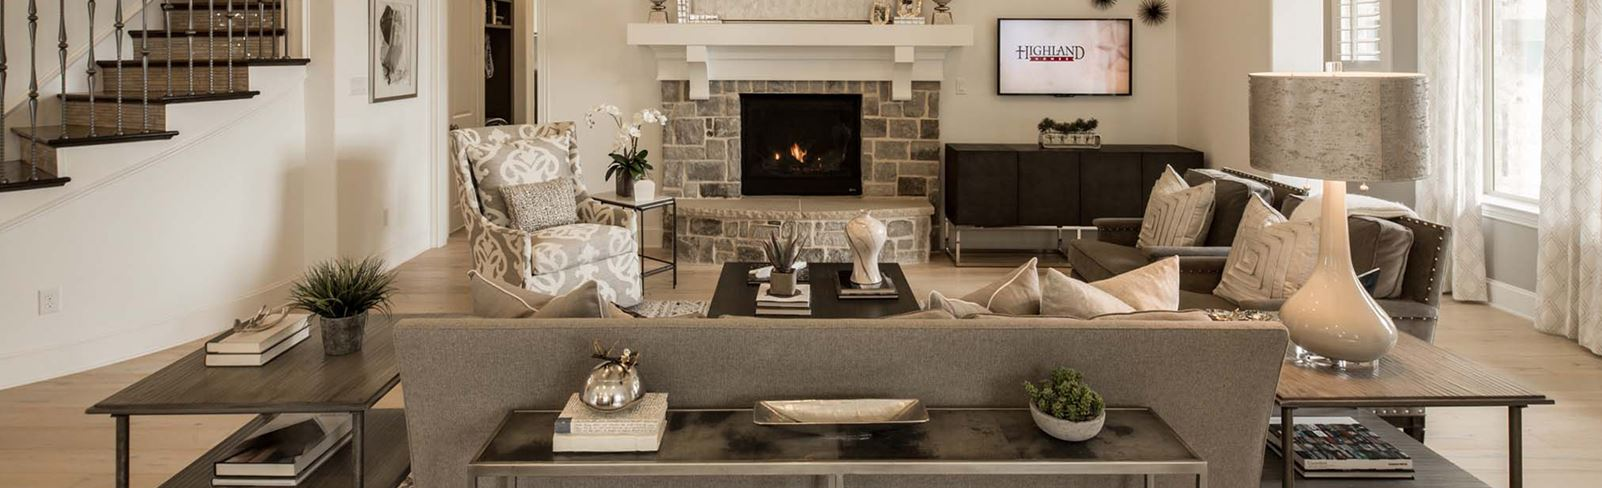 Hollyhock model homes in Frisco TX